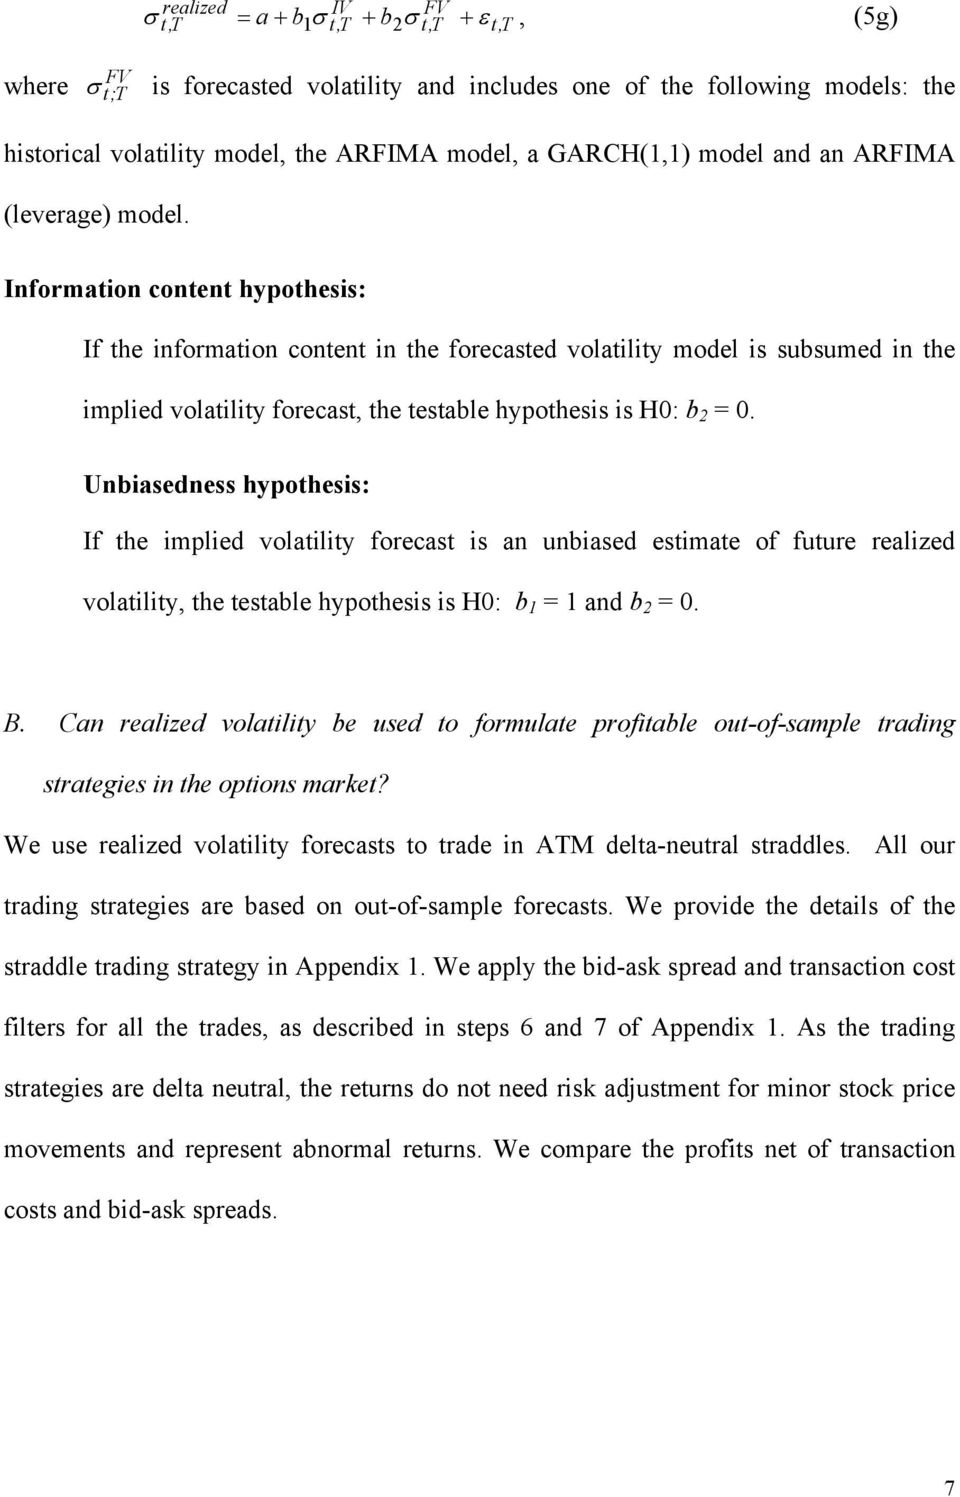 Information content hypothesis: If the information content in the forecasted volatility model is subsumed in the implied volatility forecast, the testable hypothesis is H0: b 2 = 0.